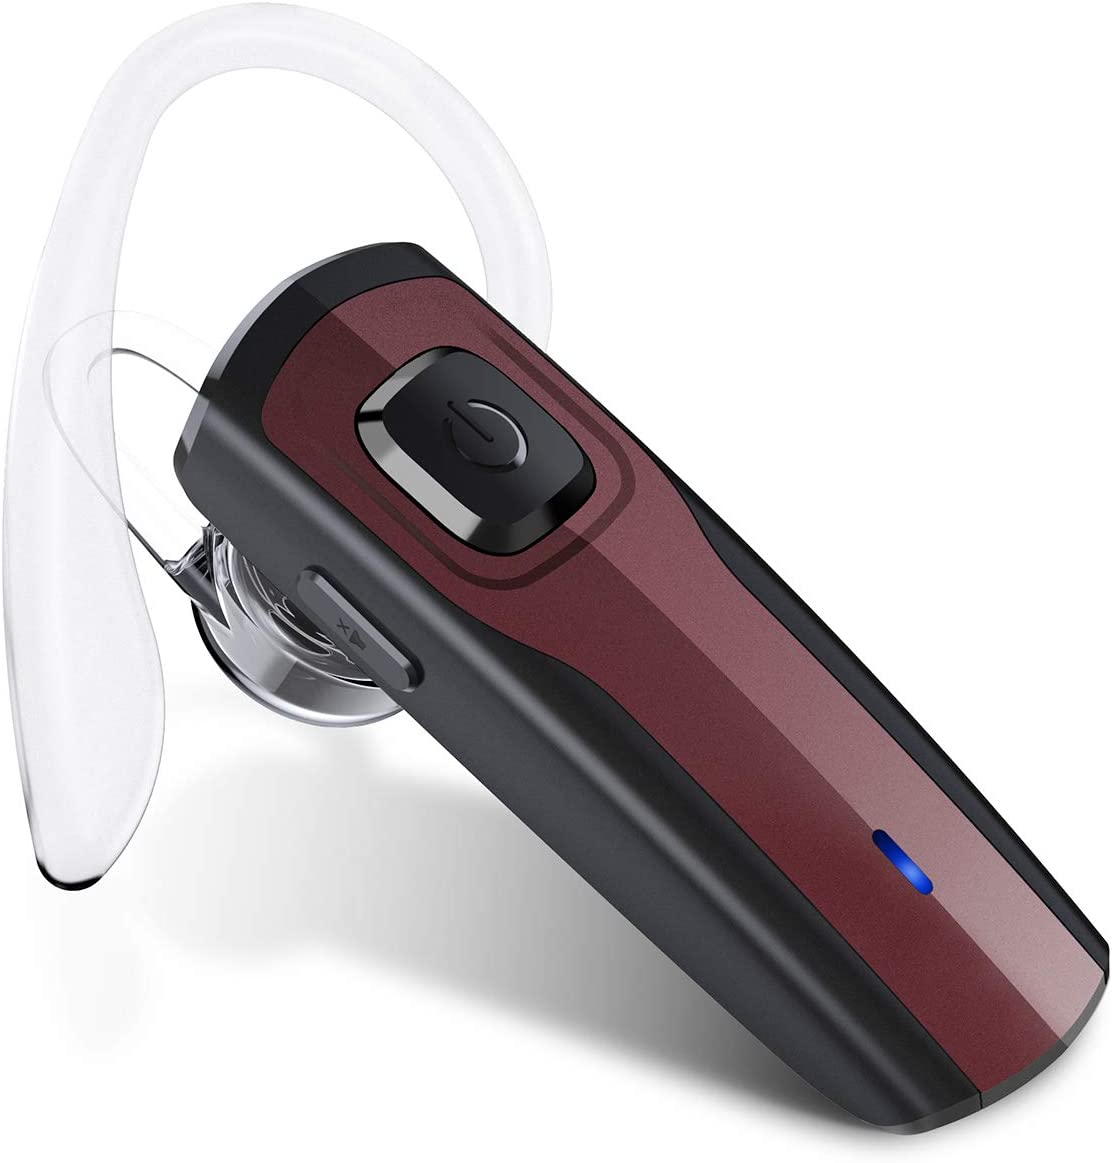 Amazon Com Bluetooth Headset Handsfree Wireless Bluetooth Earpieces Cell Phone Mic Noise Cancelling Earphones For Business Sport Driving Bluetooth V4 1 Earbuds Headphone For Iphone Android Laptop Red Home Audio Theater